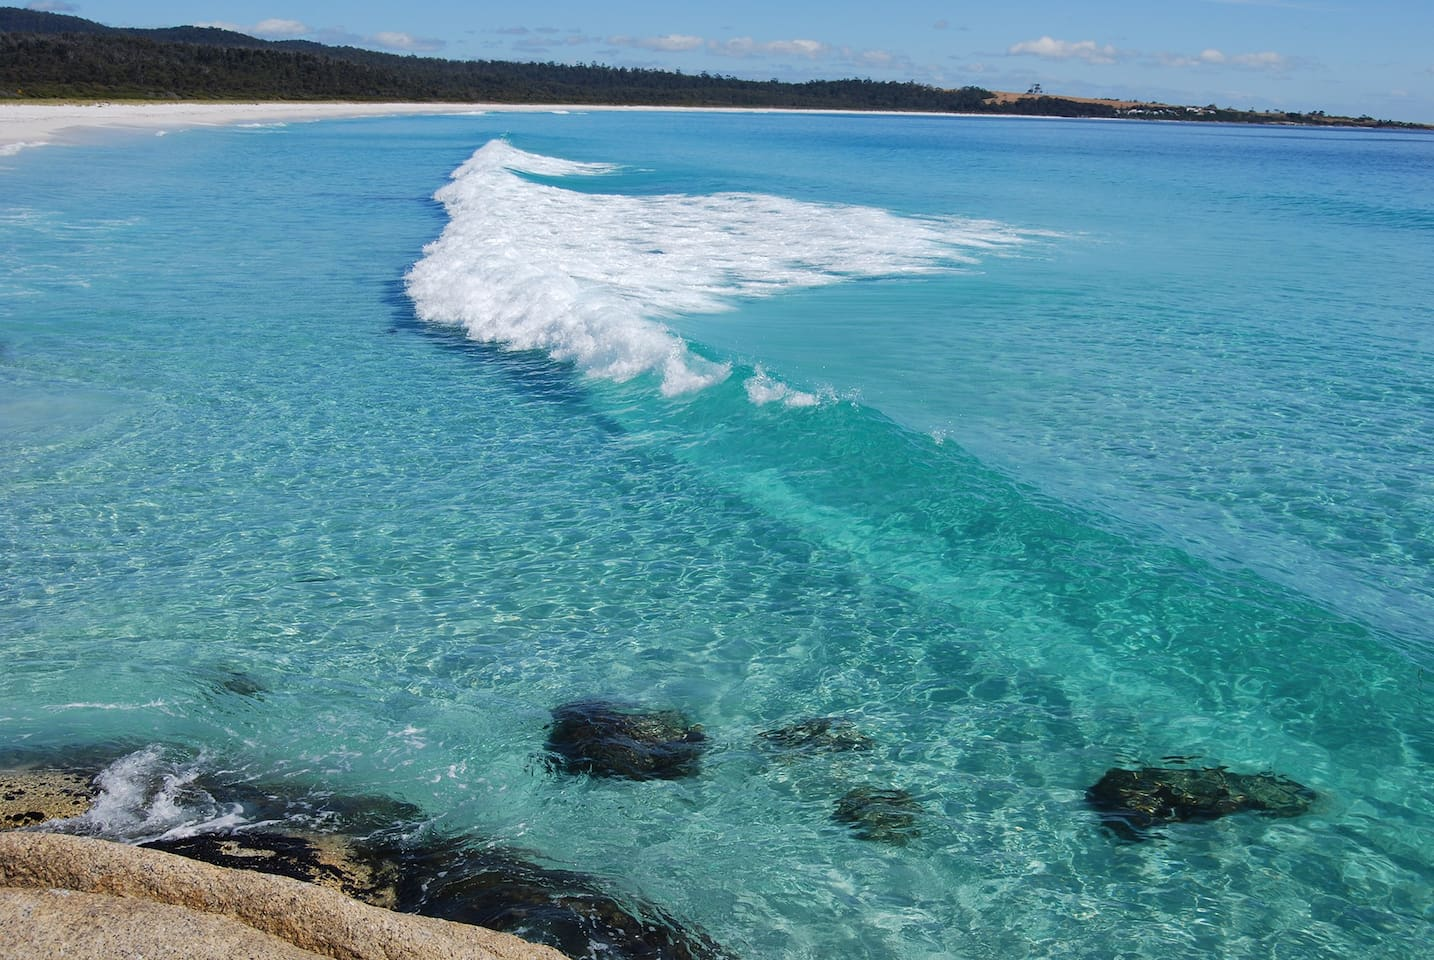 Our beautiful beach and crystal clear turquoise water